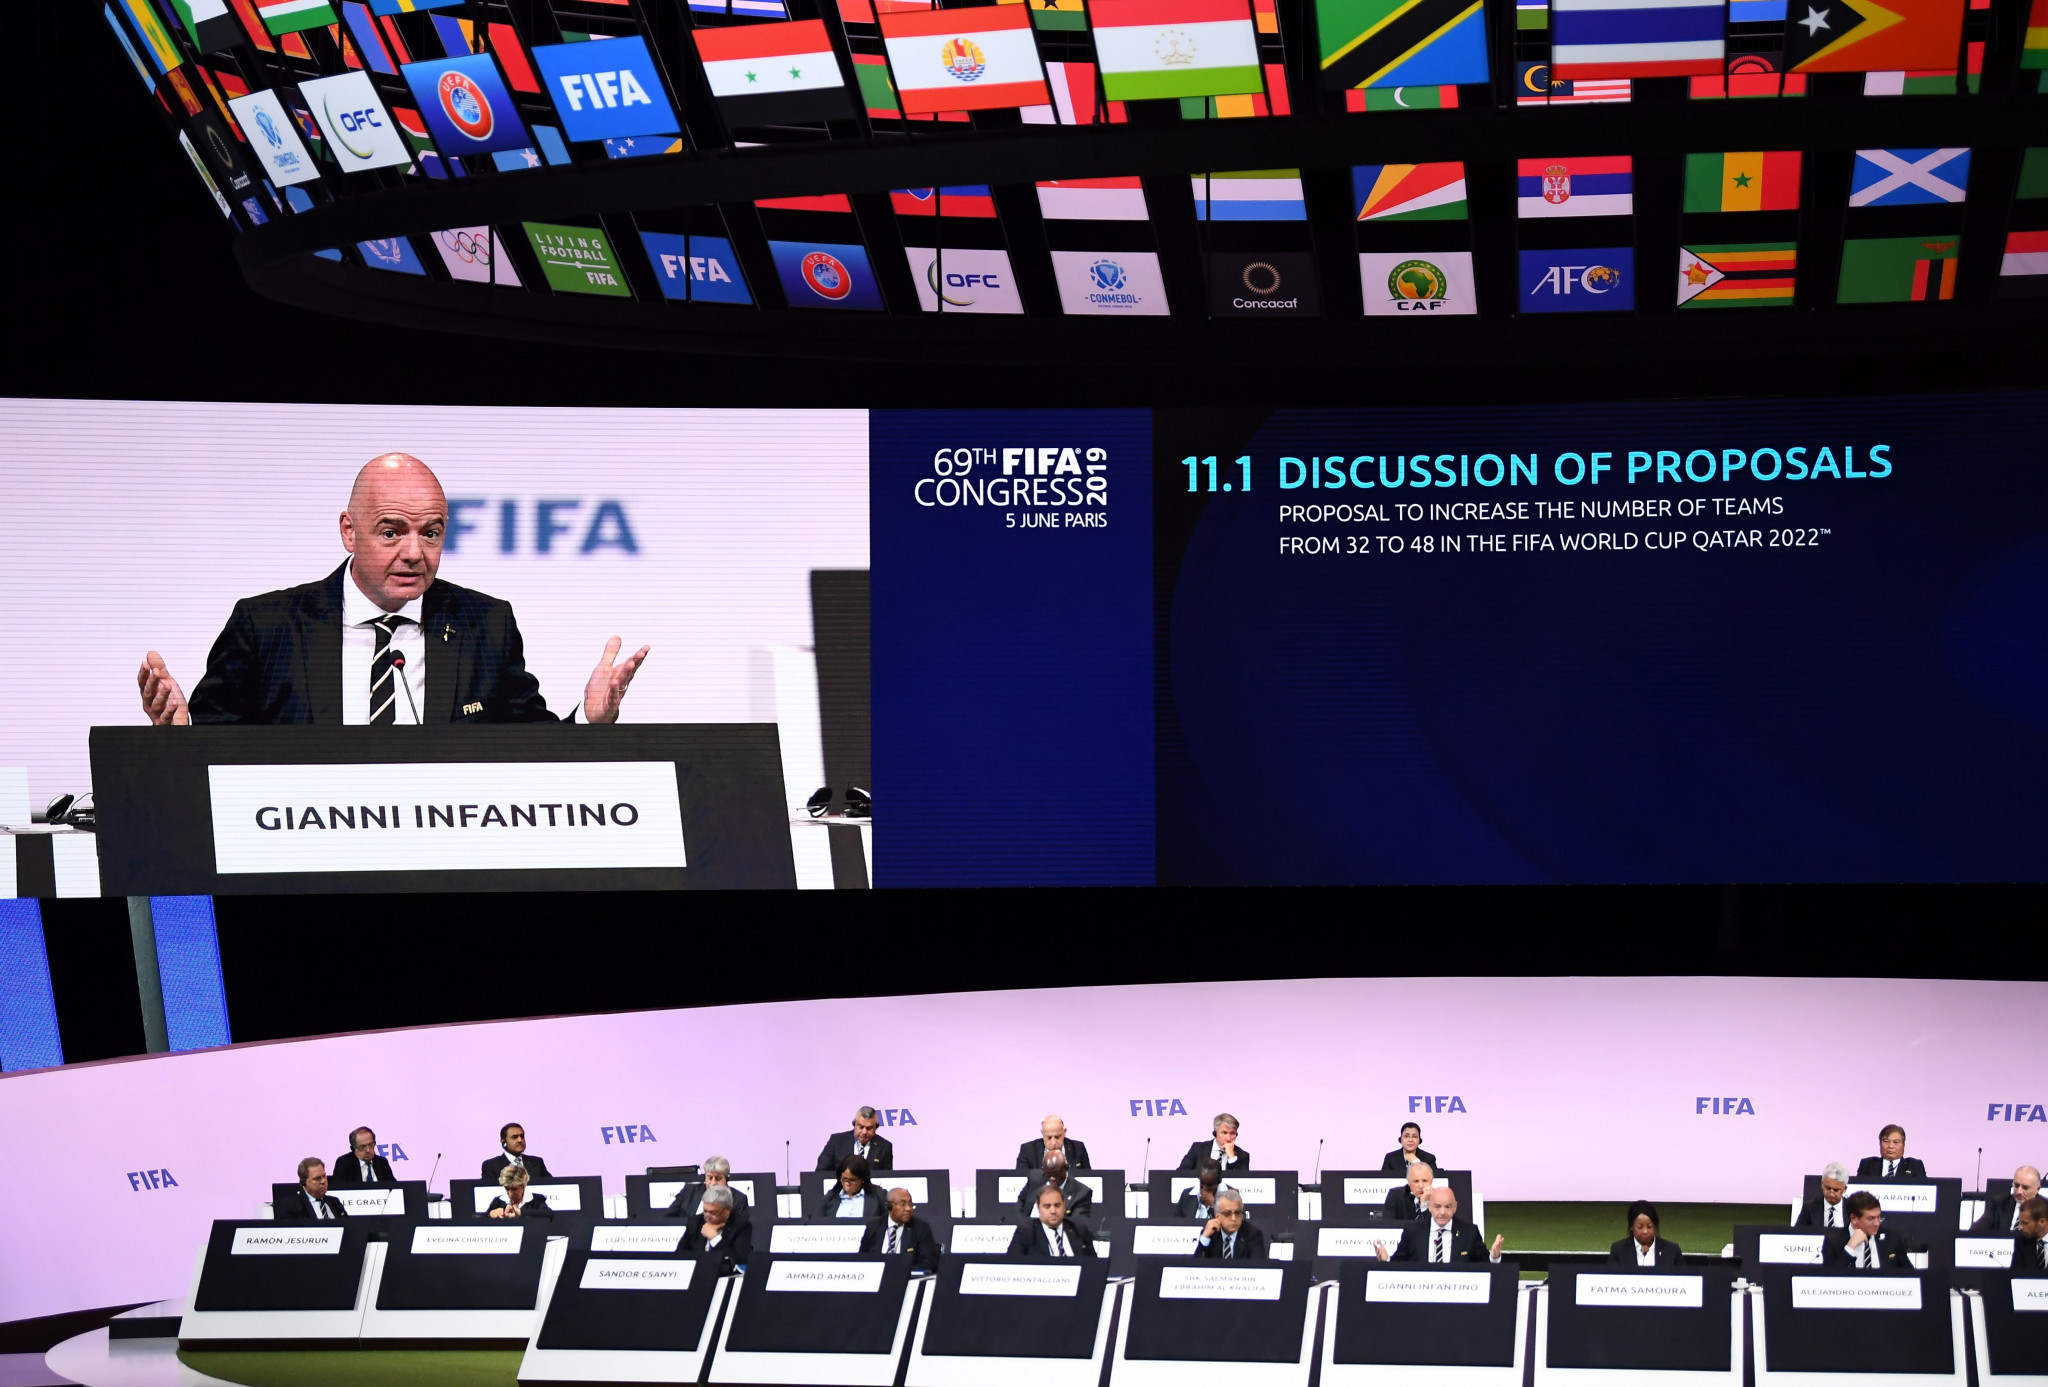 Gianni Infantino said he would continue his plans to expand FIFA's major competitions during his fresh four-year term as President ©Getty Images